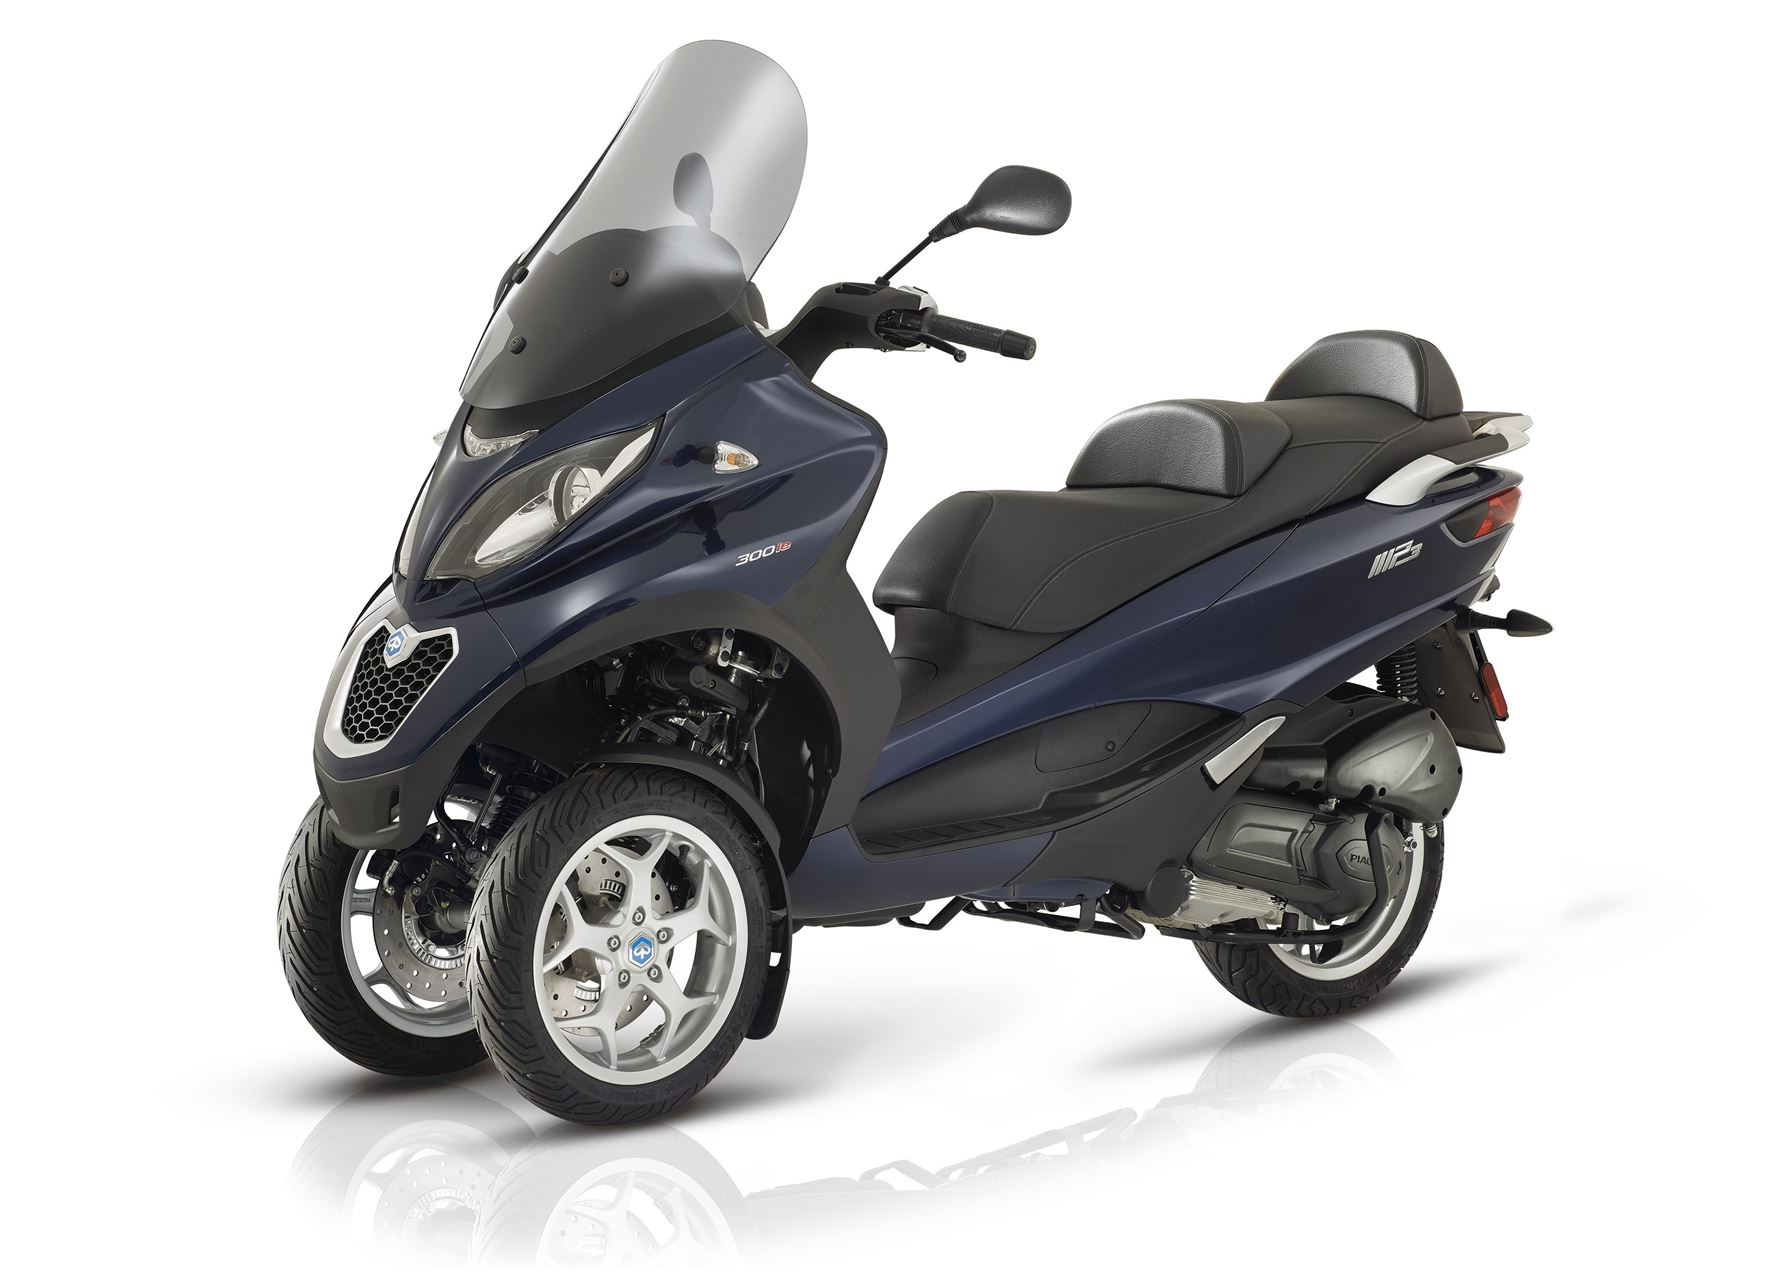 piaggio mp3 300 lt business scooter acima 125 cc andar de moto. Black Bedroom Furniture Sets. Home Design Ideas